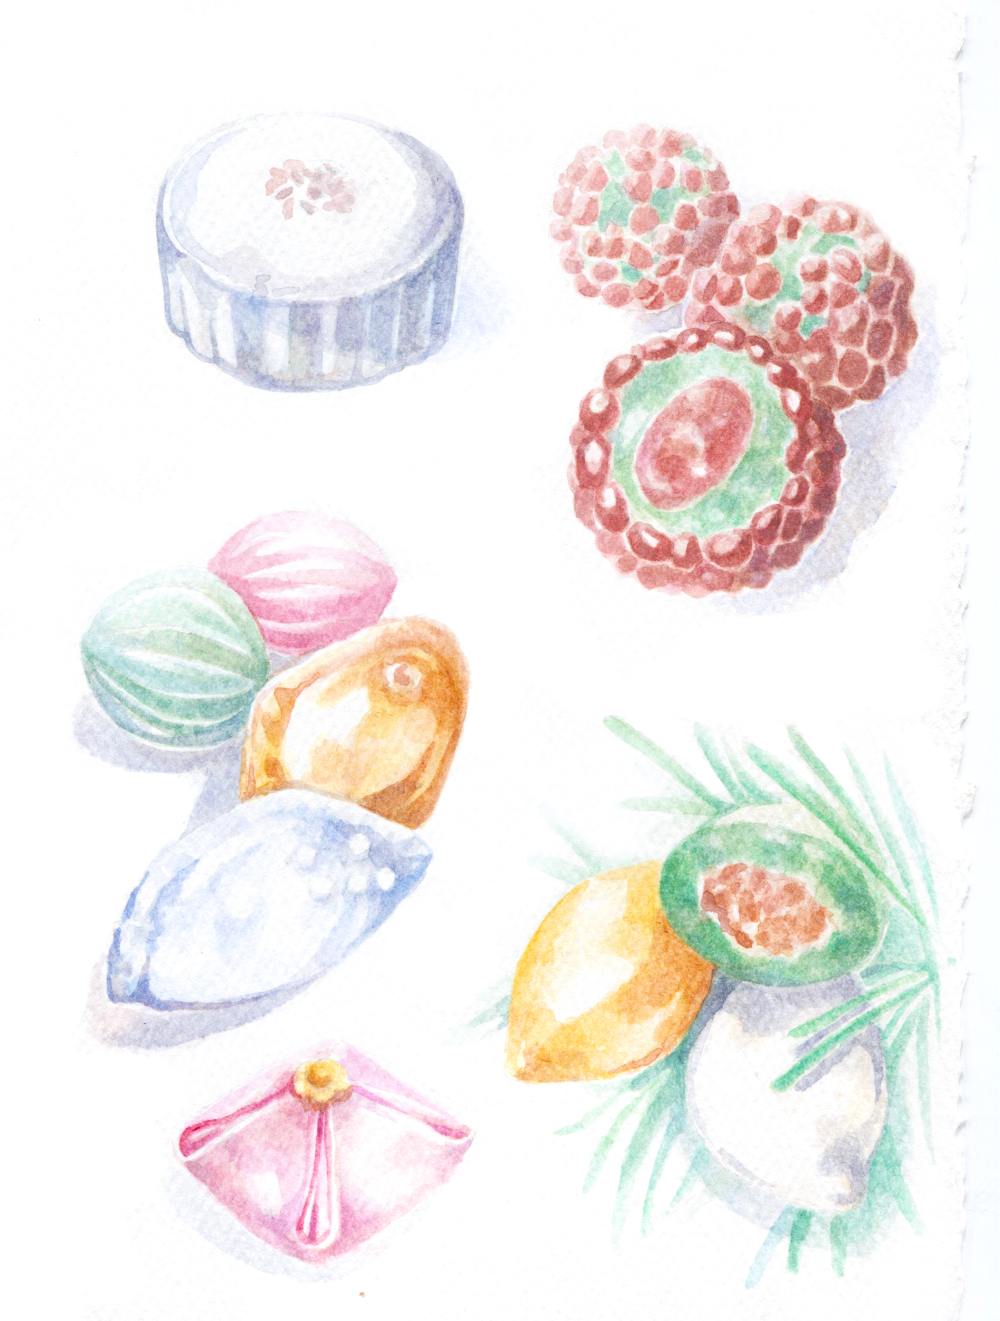 Korean rice cakes 'Ddeok', watercolor illustrations. Songpyeon, Omegi-Ddeok (typical rice cake of Jeju Island) and Baekseolgi.